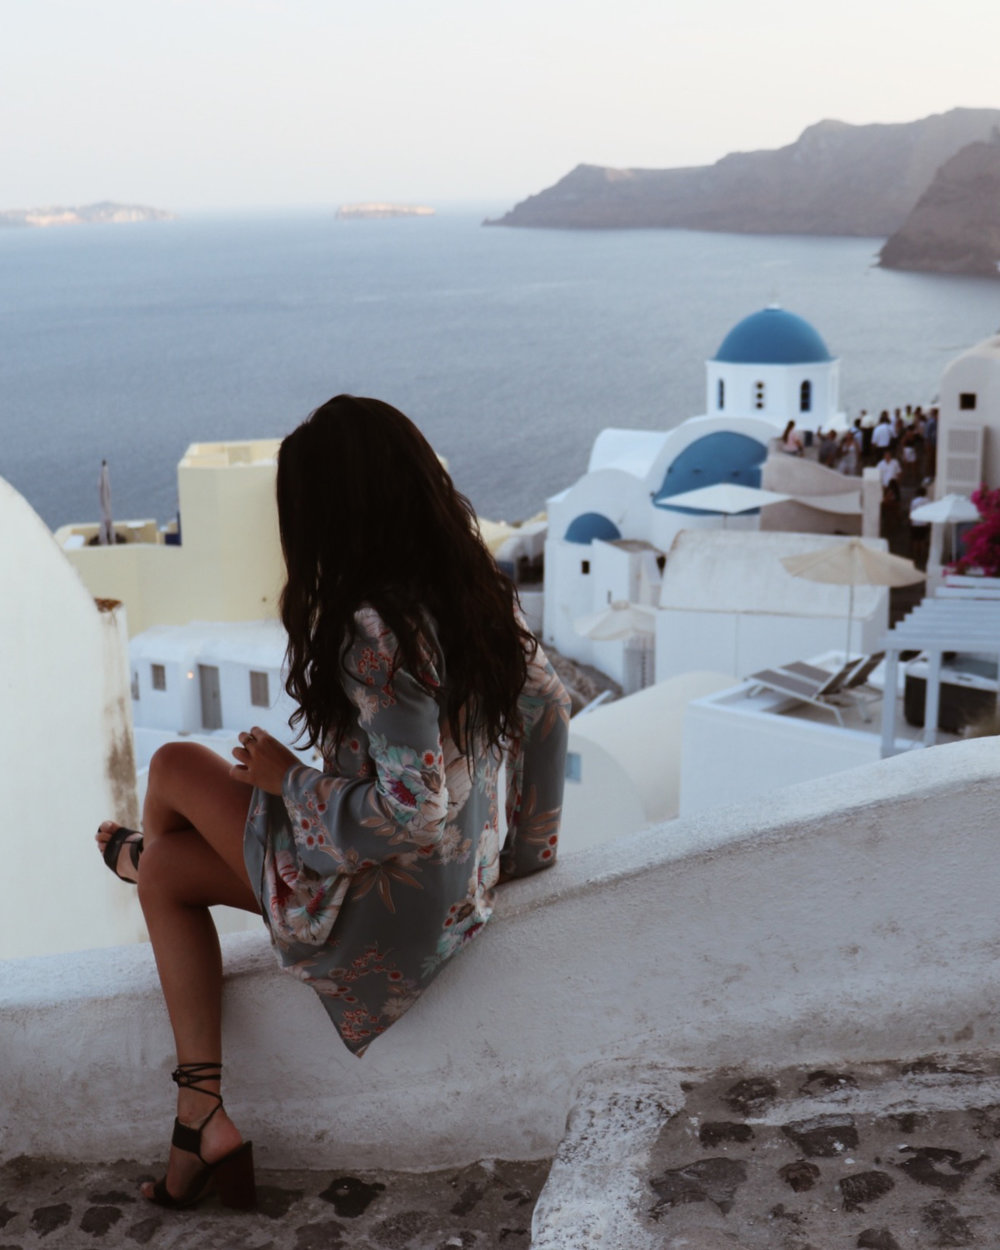 Blogging with a 9-5. Crazy or one of the most rewarding hustles? In my interview series, The 9-5 Grind, I interview talented travel bloggers who just so happen to be working full-time. In this post, I interview Angelina Zeppieri of Where Next.